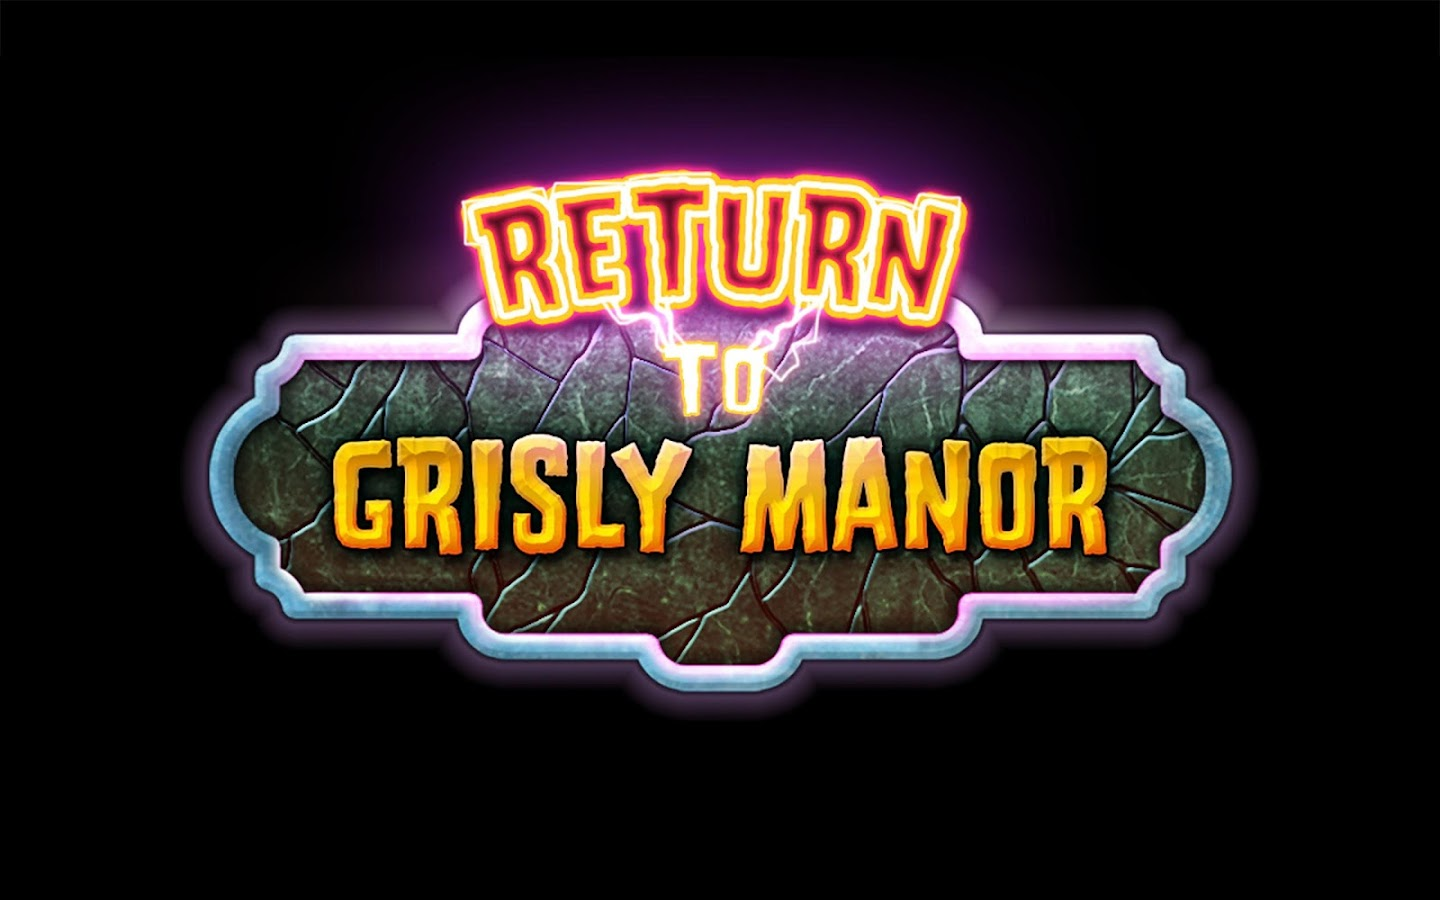 Return to Grisly Manor Screenshot 5